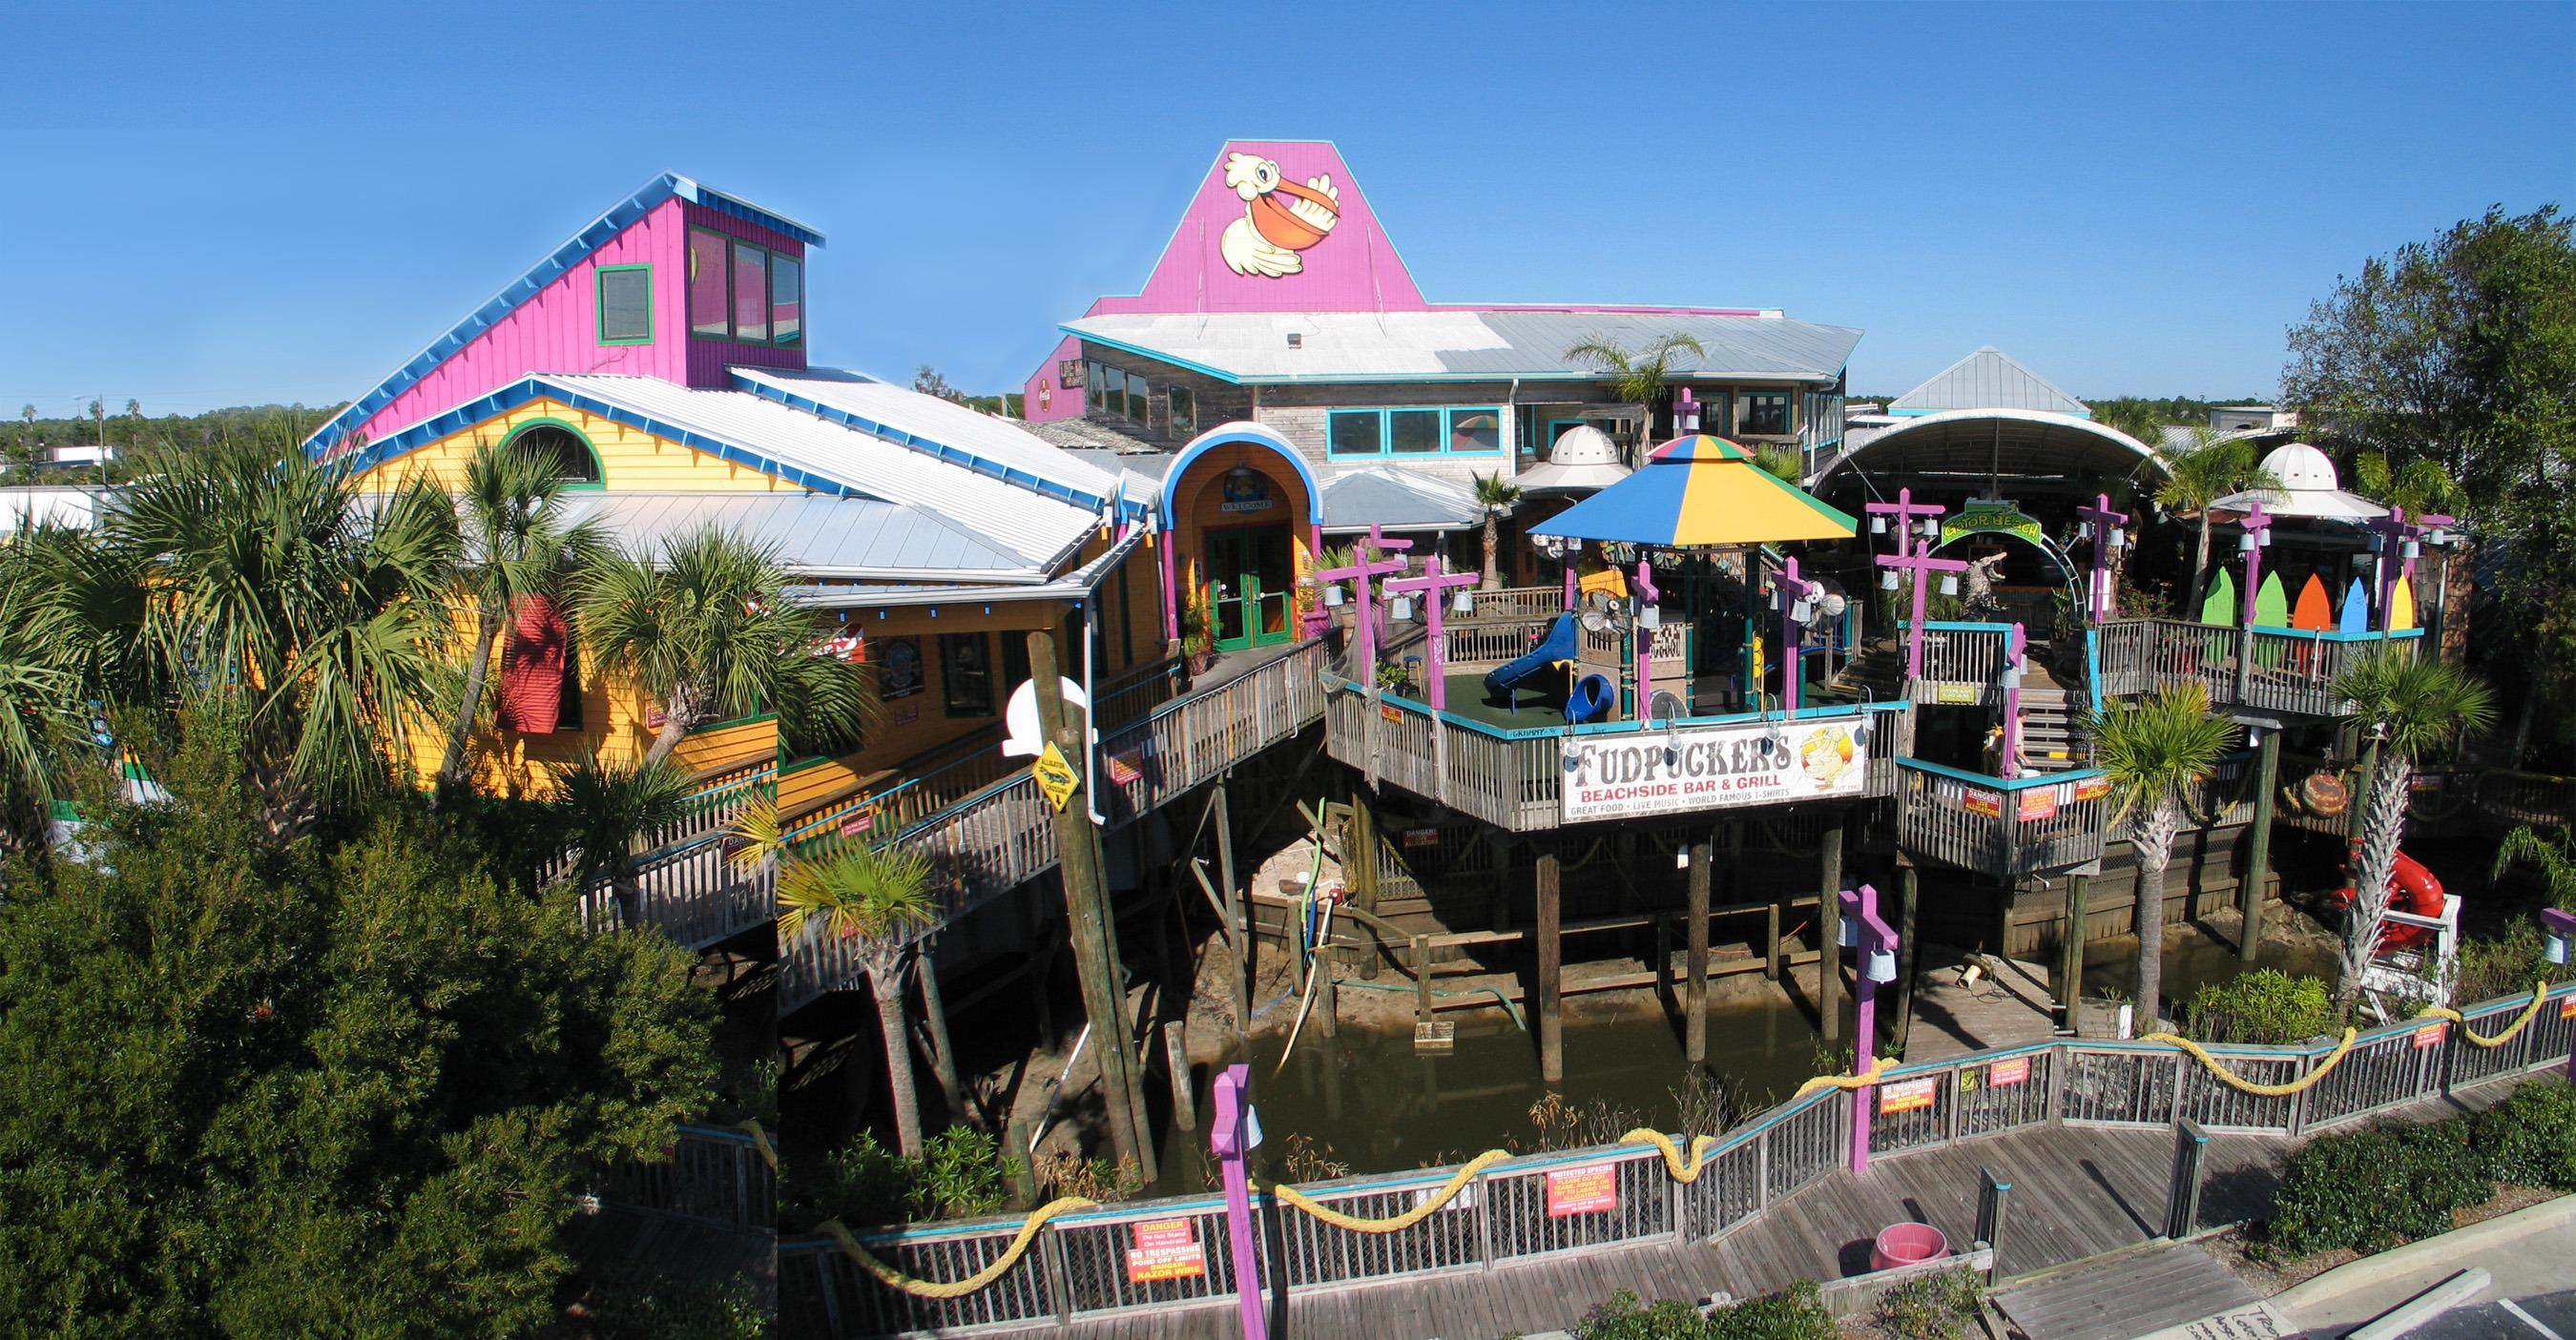 Fudpuckers Beachside Bar & Grill - Destin, FL